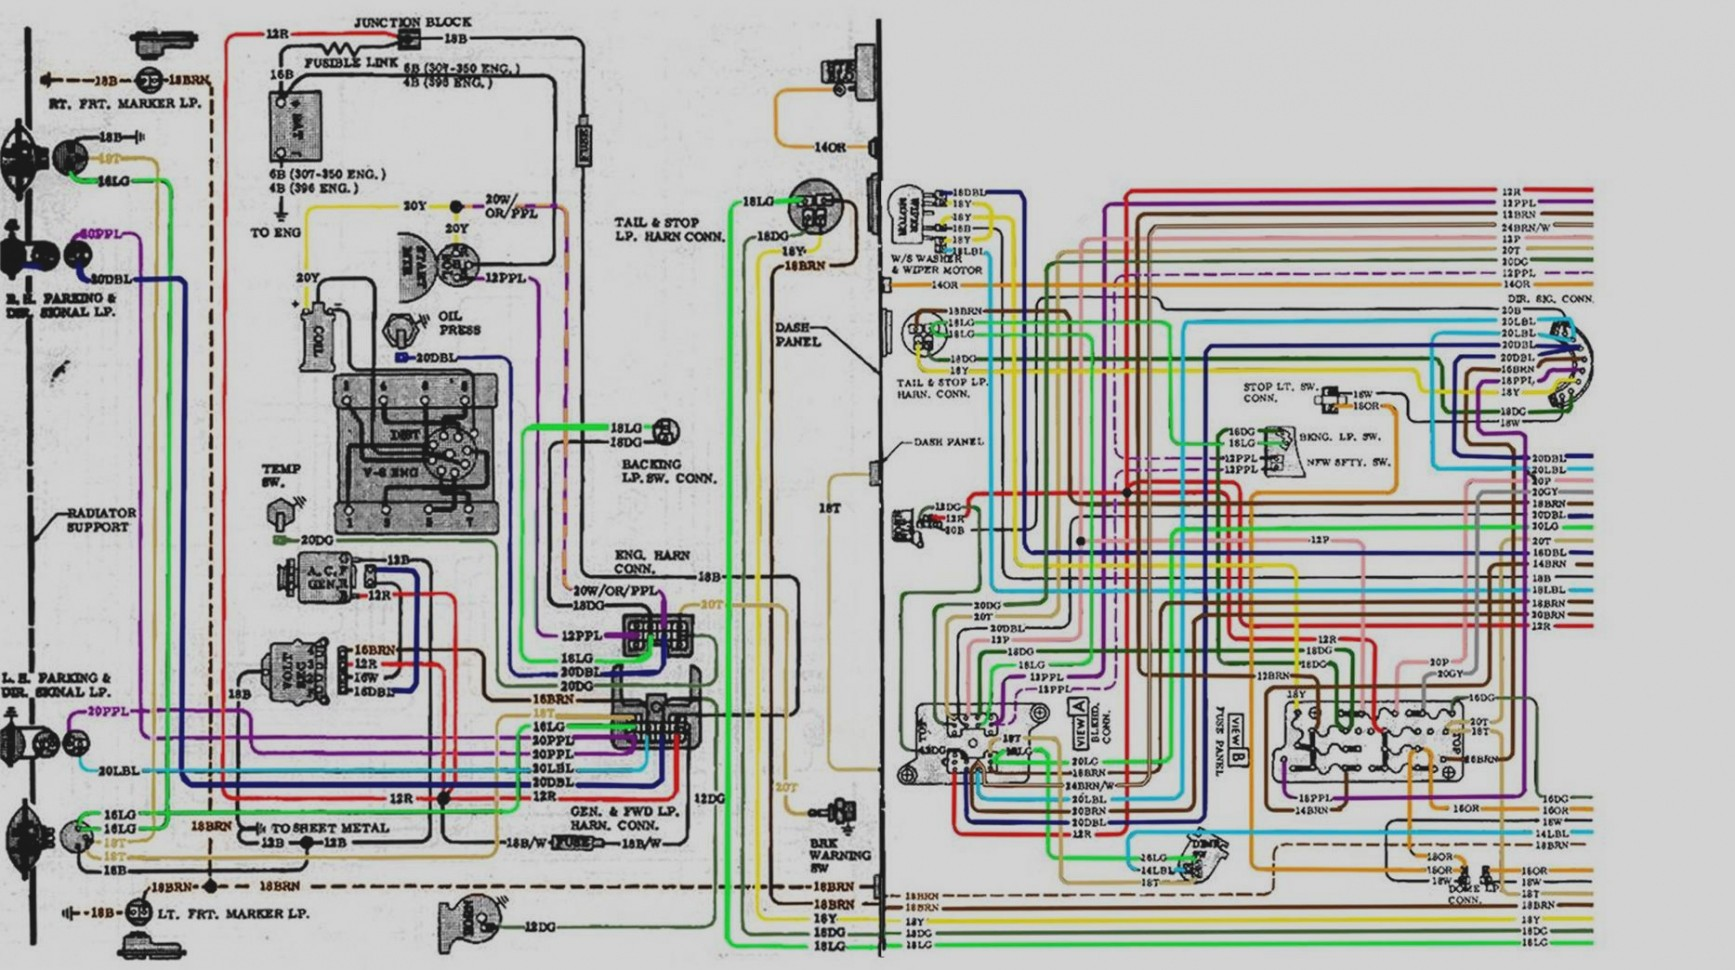 1972 Chevelle Wiring Harness Diagram - Center Wiring Diagram hear-housing -  hear-housing.iosonointersex.itiosonointersex.it